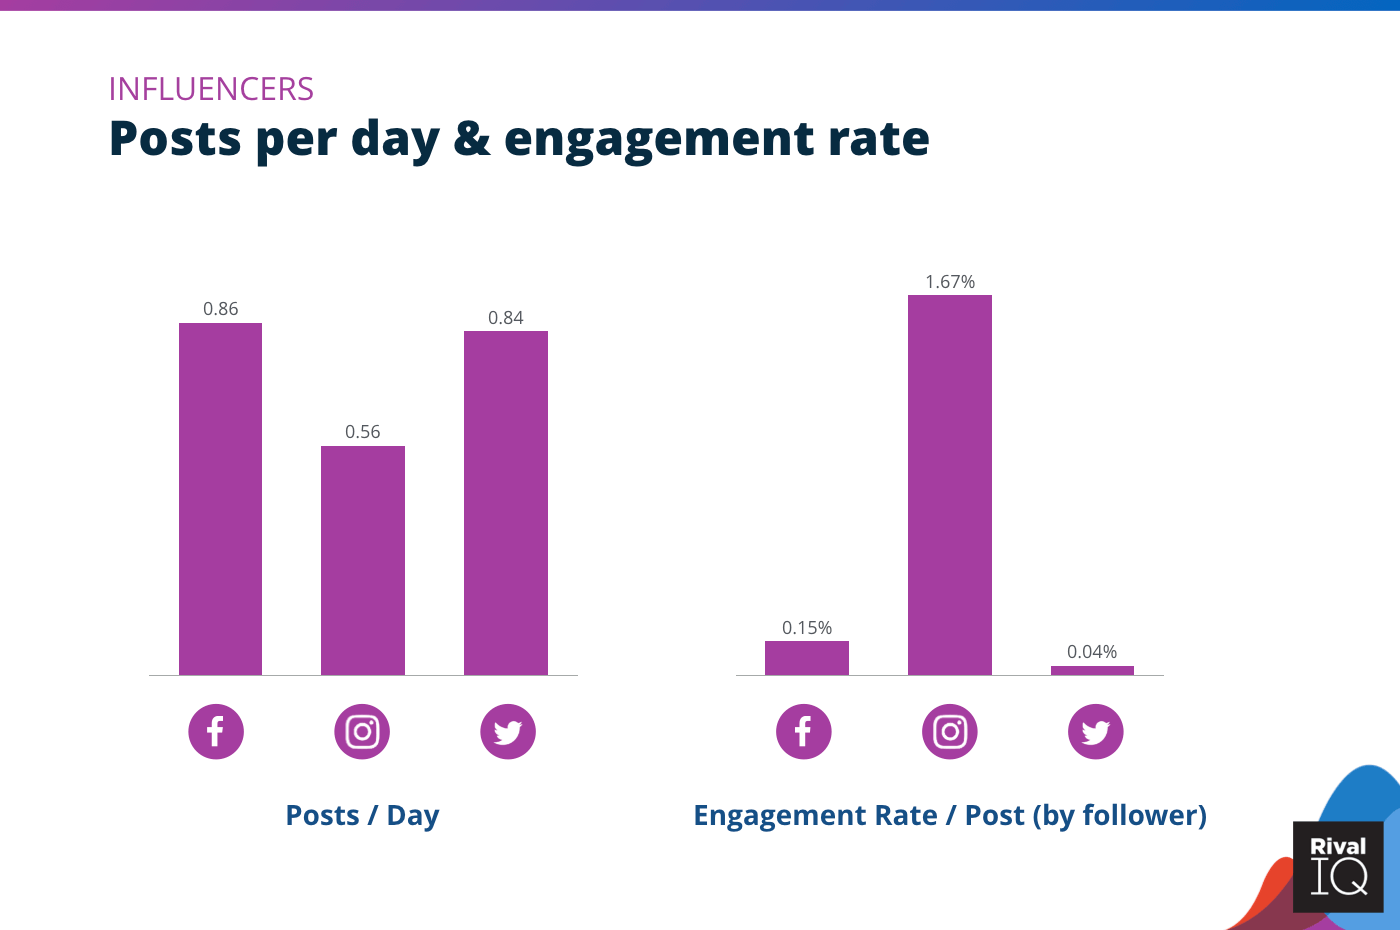 Chart of Posts per day and engagement rate per post across all channels, Influencers